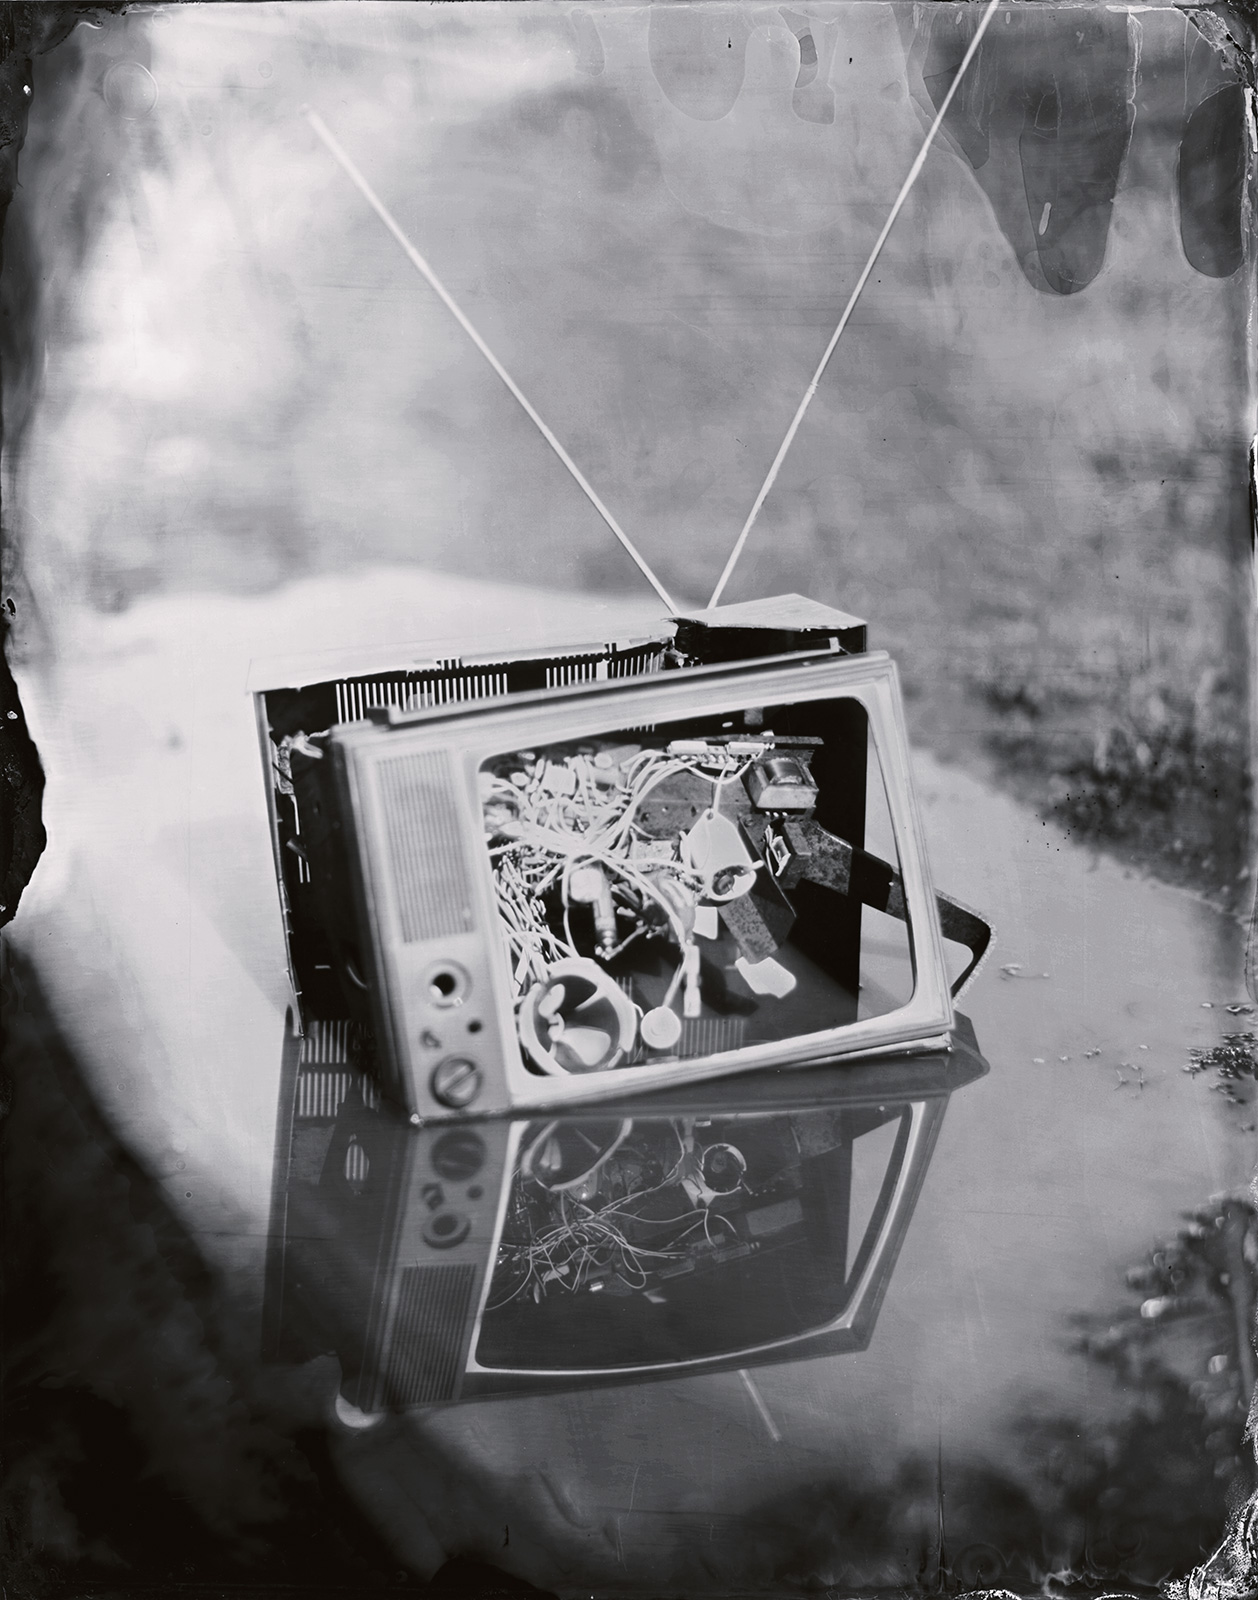 Television in Puddle